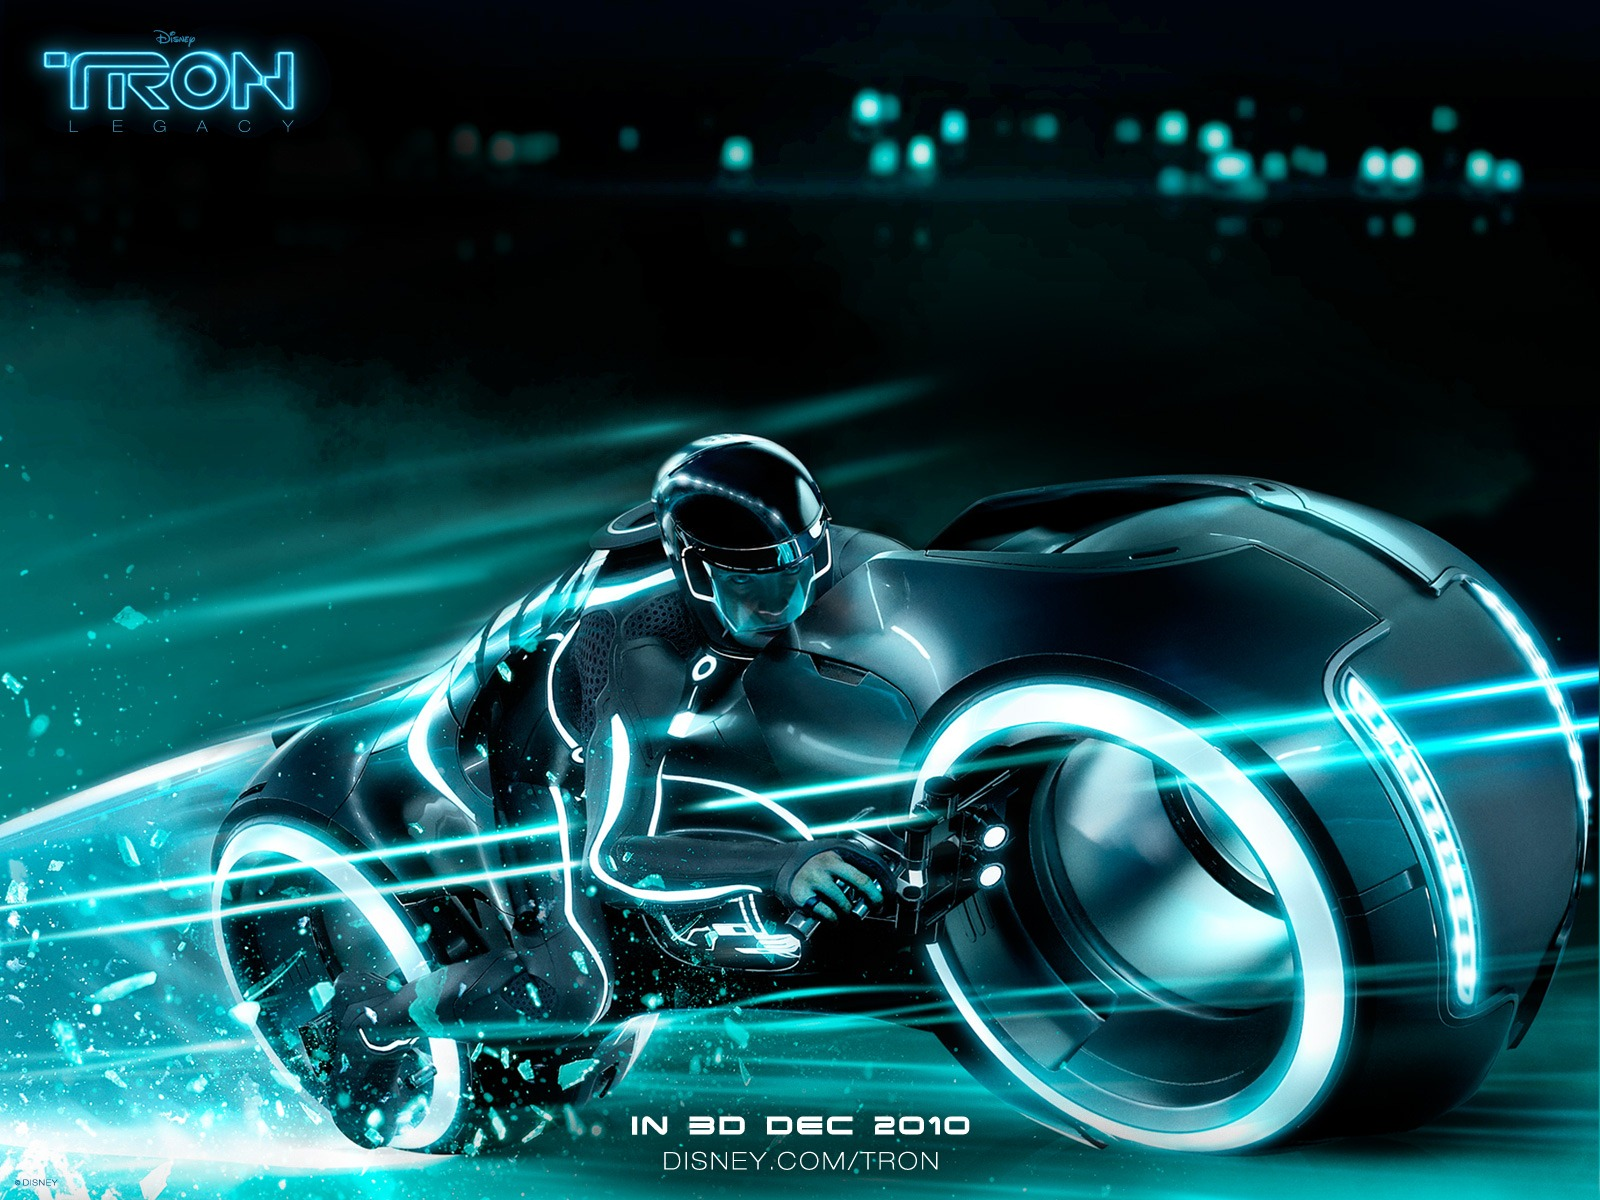 Tron Legacy 3D Wallpapers HD Wallpapers 1600x1200